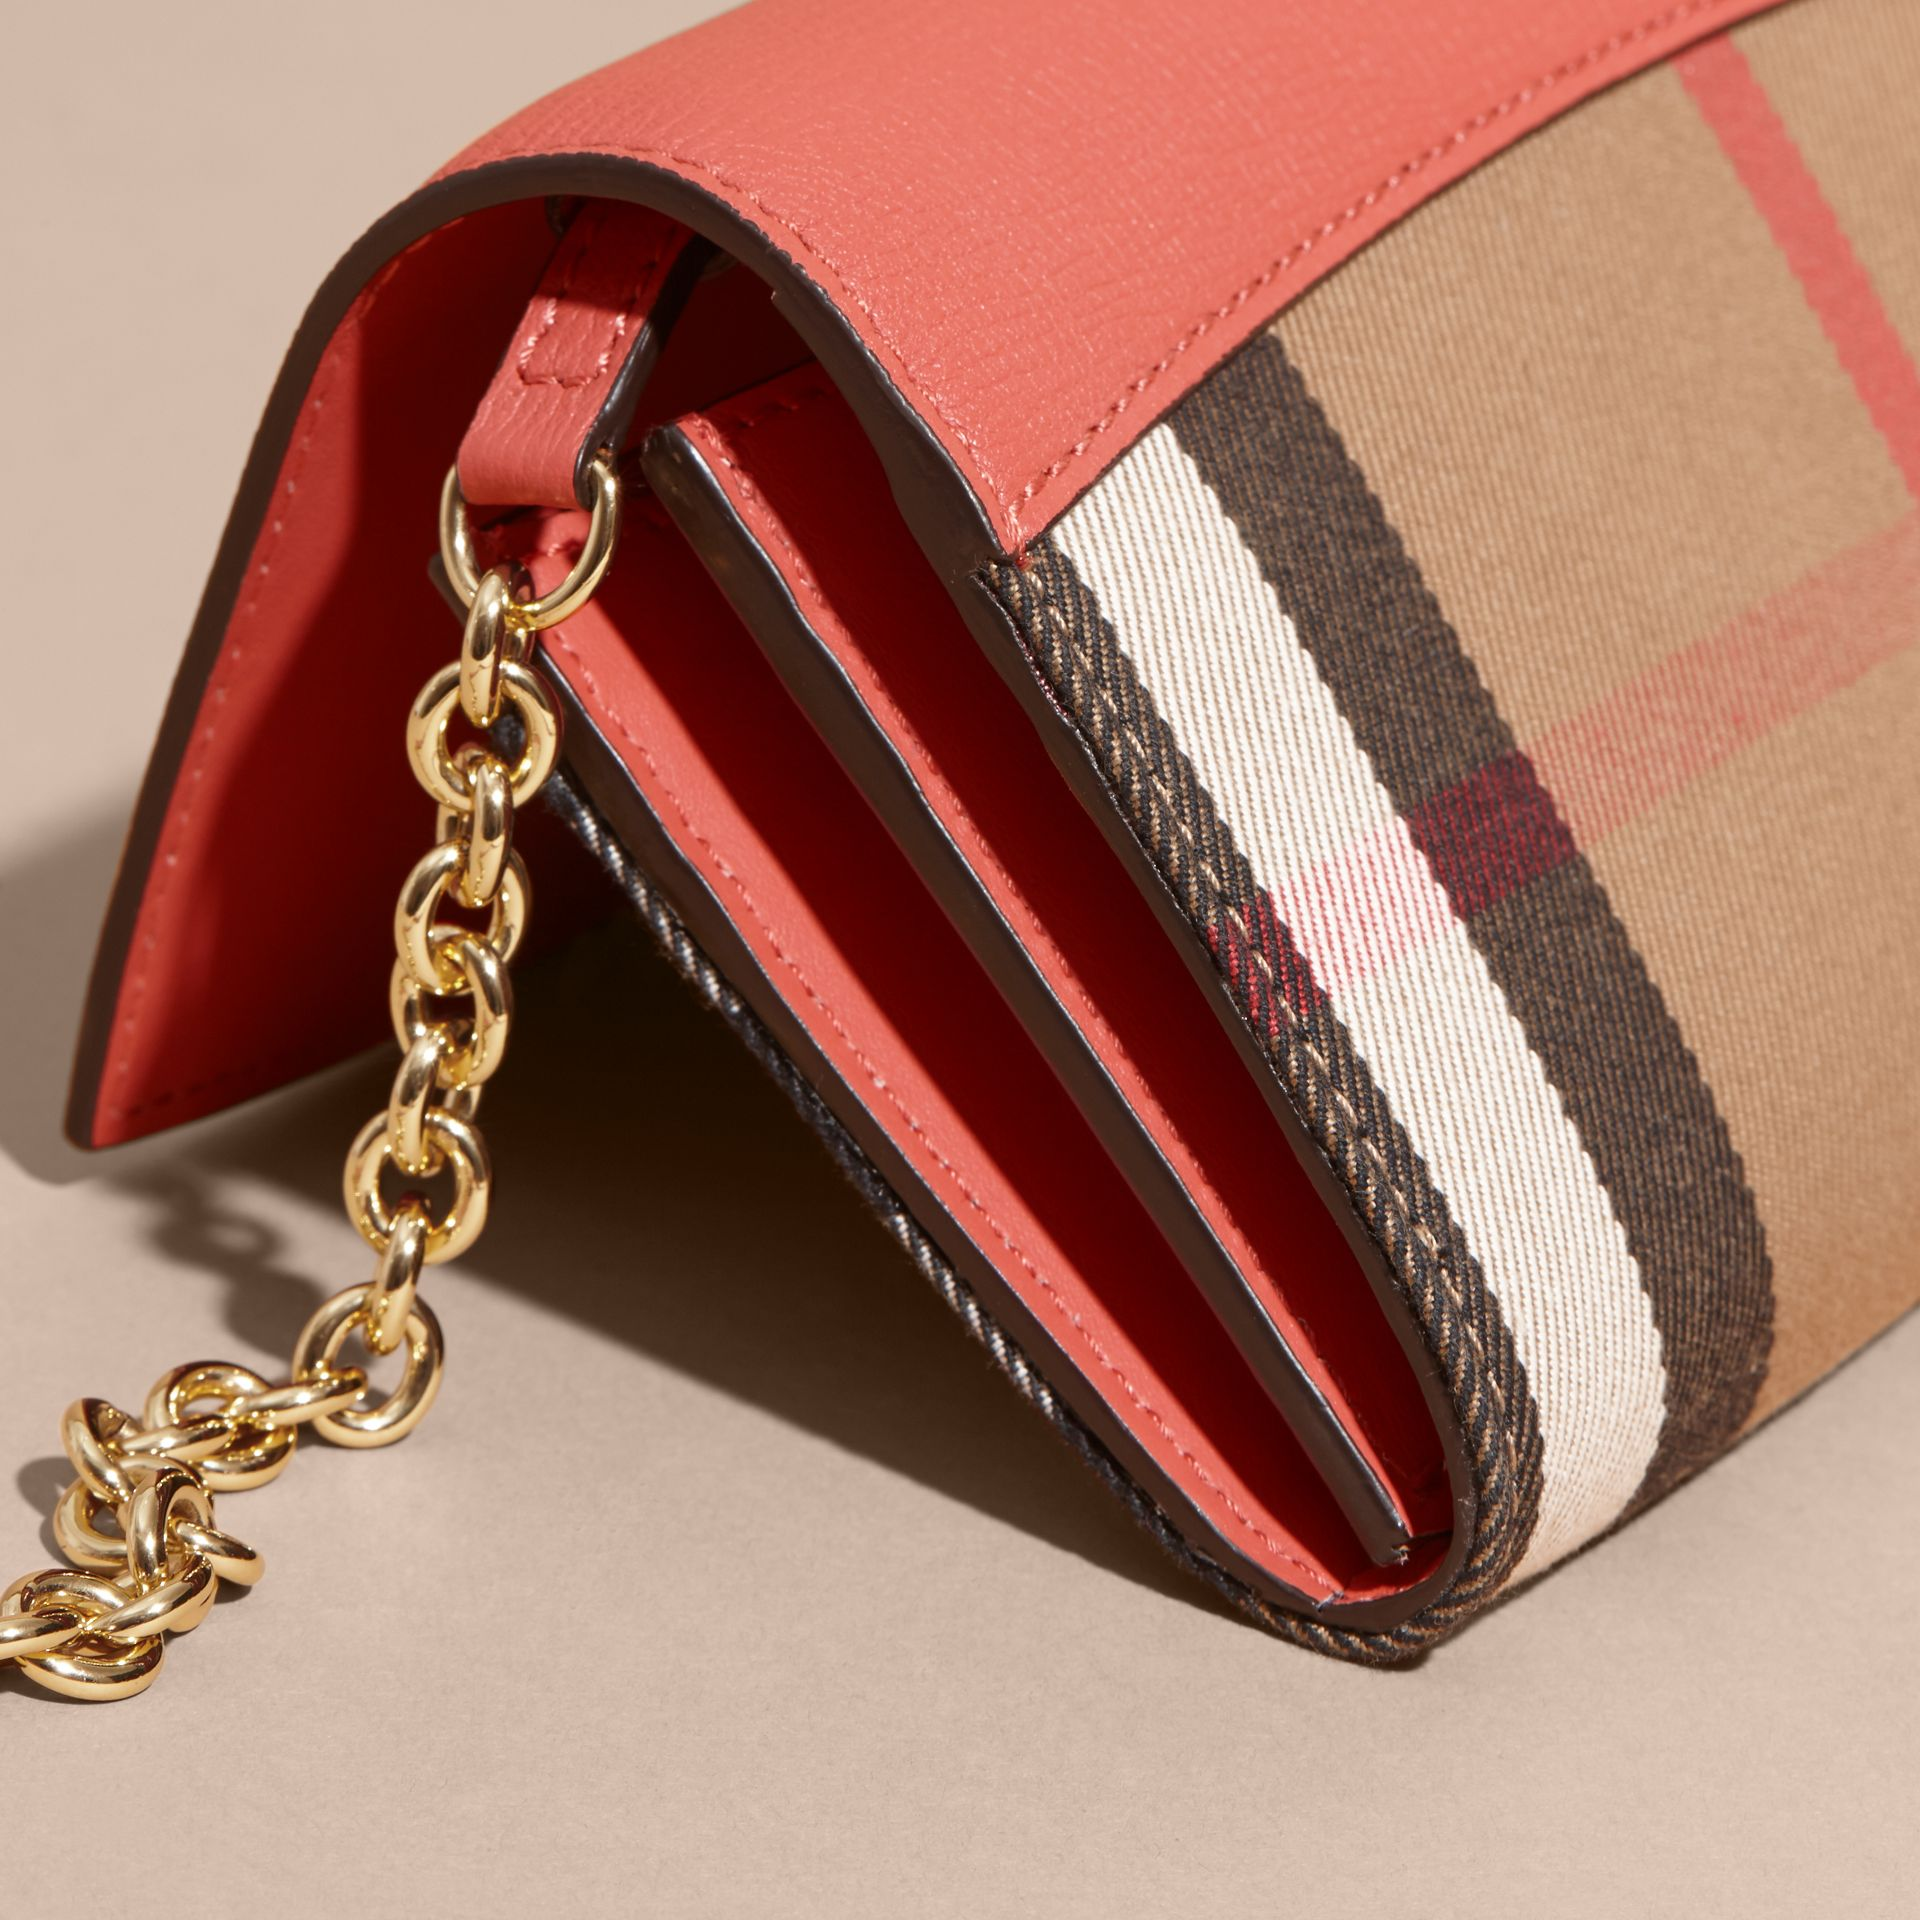 House Check and Leather Wallet with Chain in Cinnamon Red - Women | Burberry United Kingdom - gallery image 6